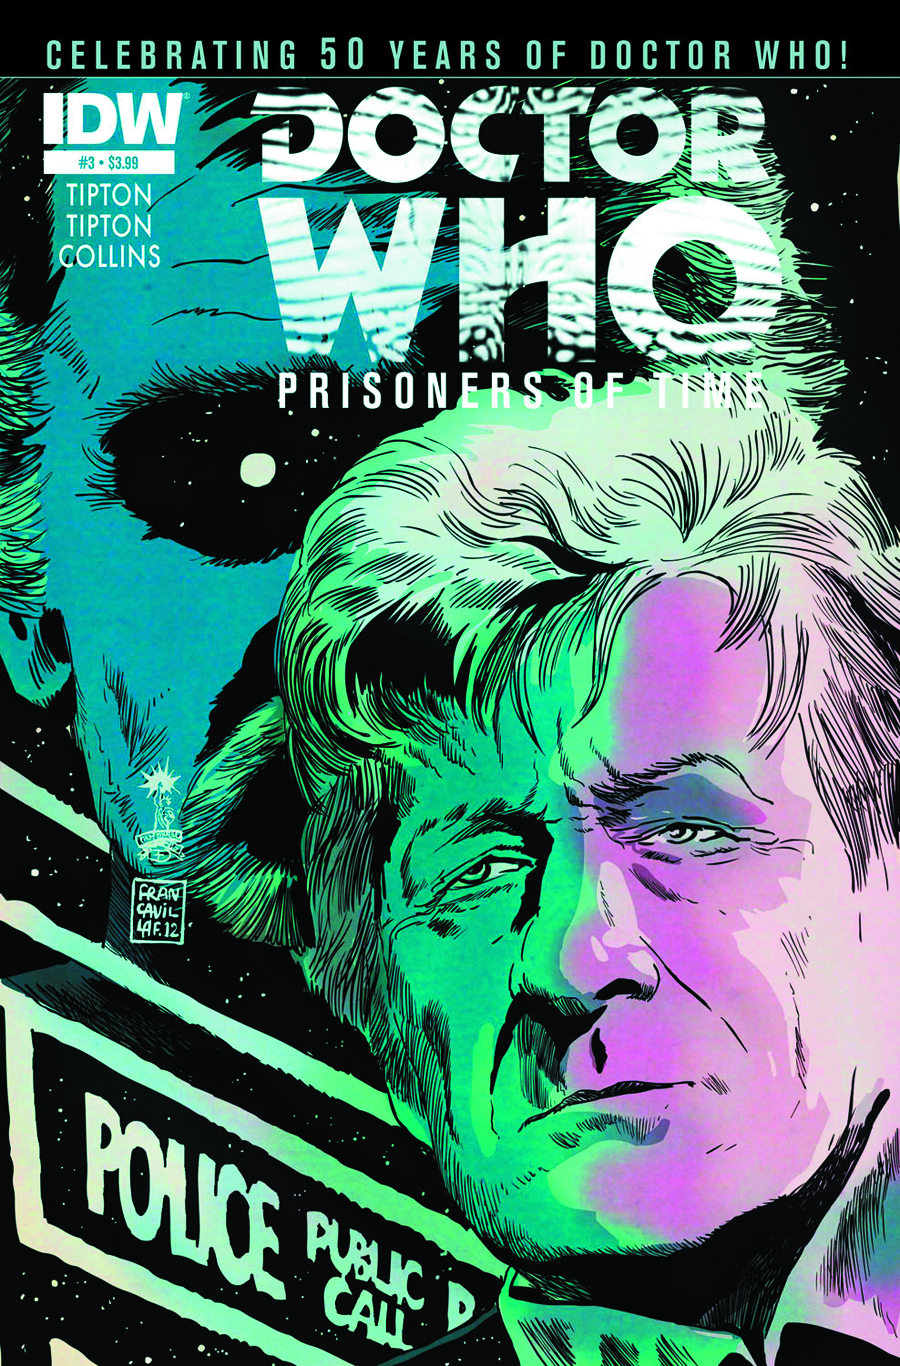 DOCTOR WHO PRISONERS OF TIME #3